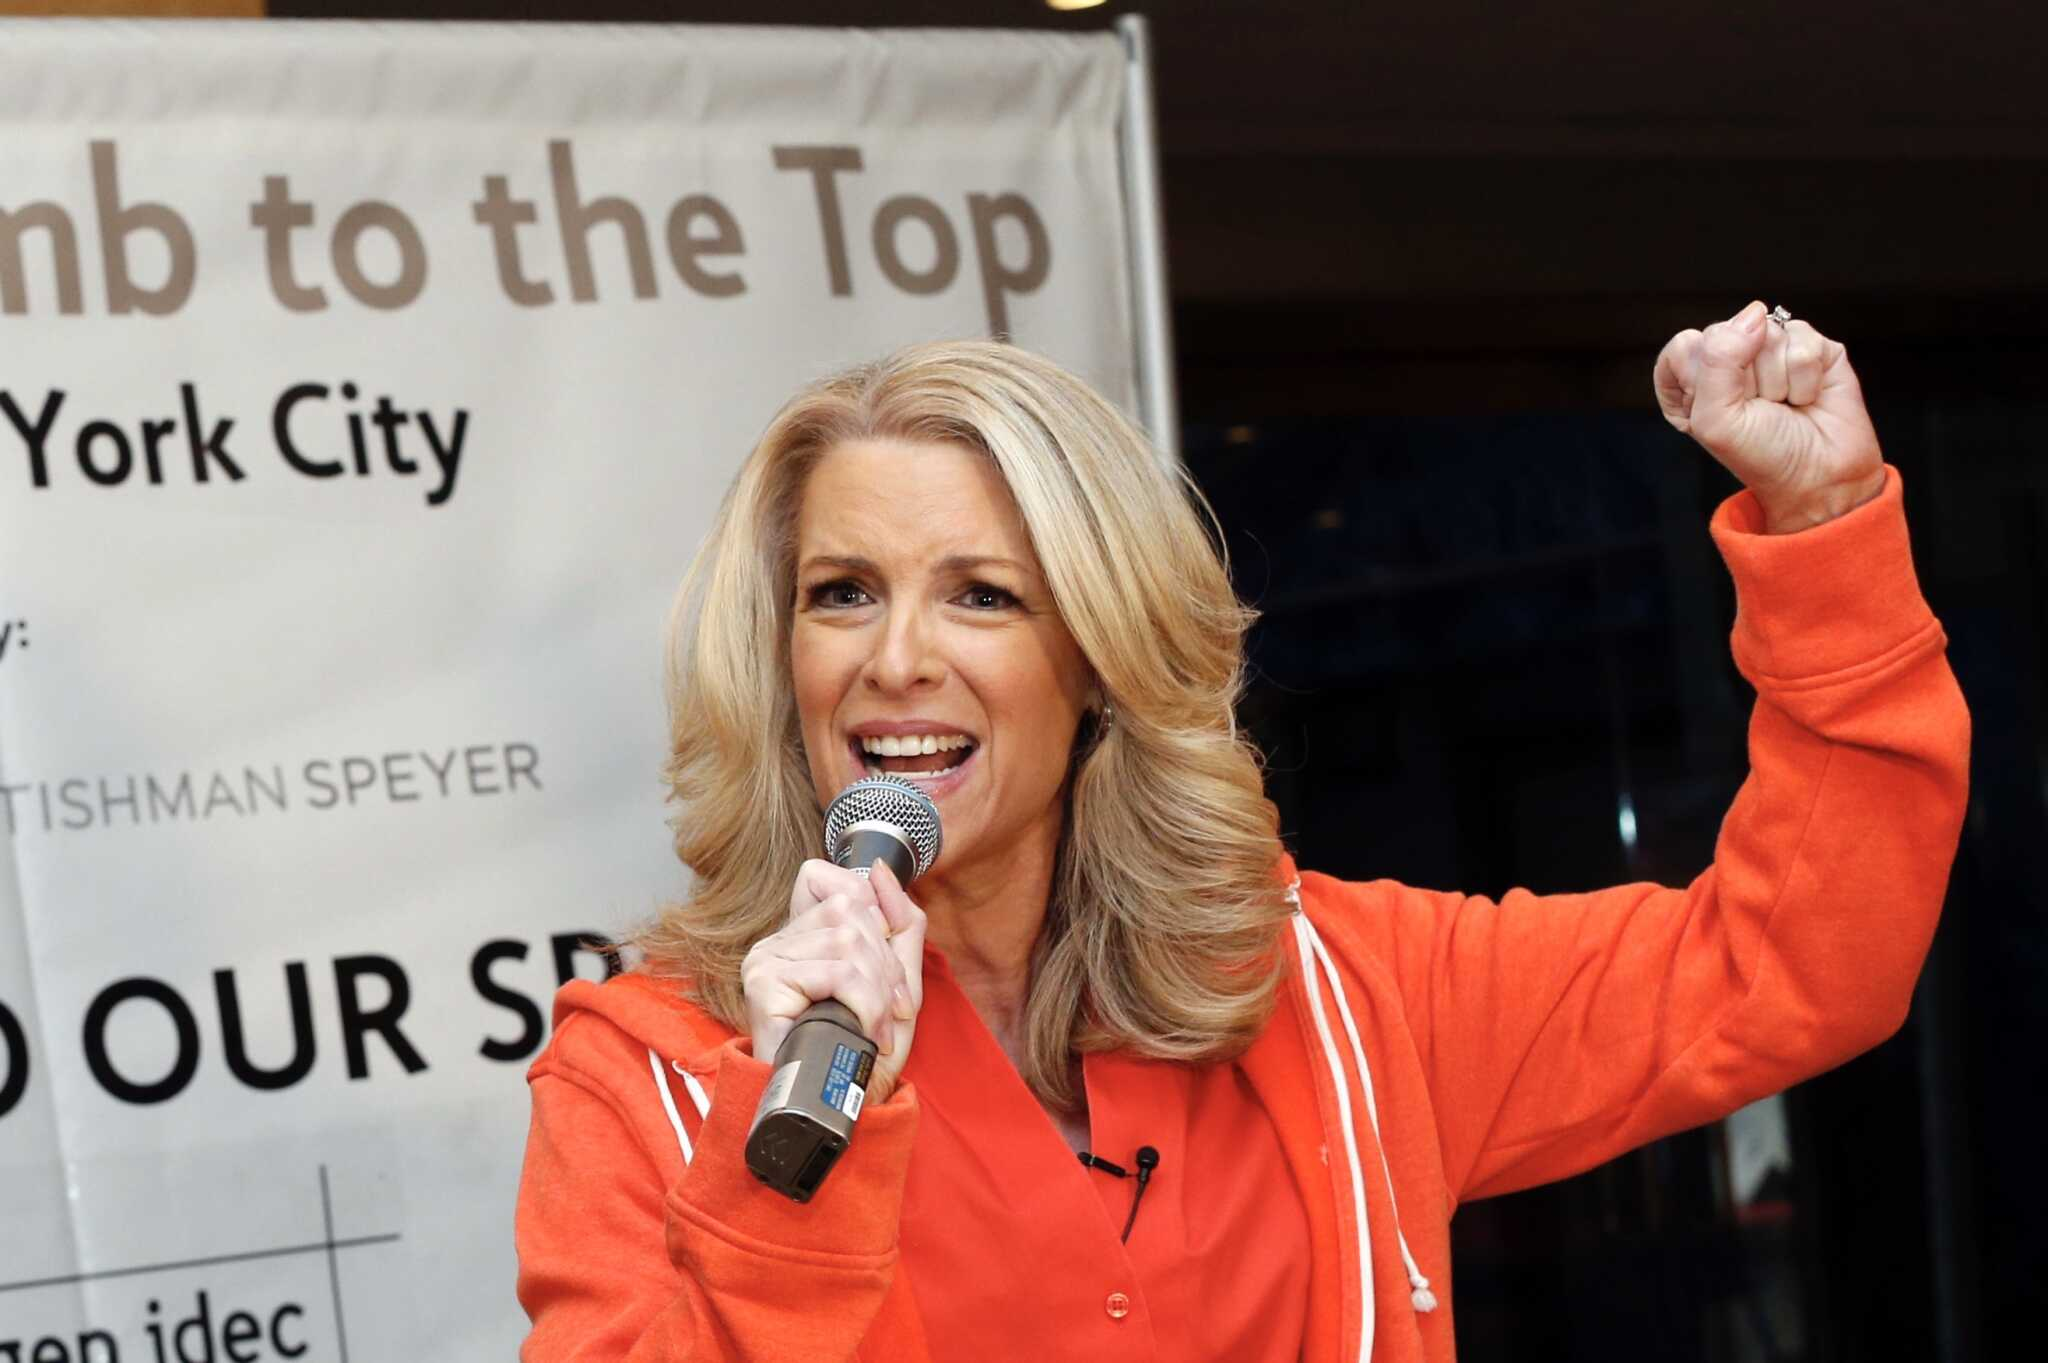 Fox News' Janice Dean Feels 'Calling' to Hold Cuomo Accountable After COVID Killed In-Laws in Nursing Home